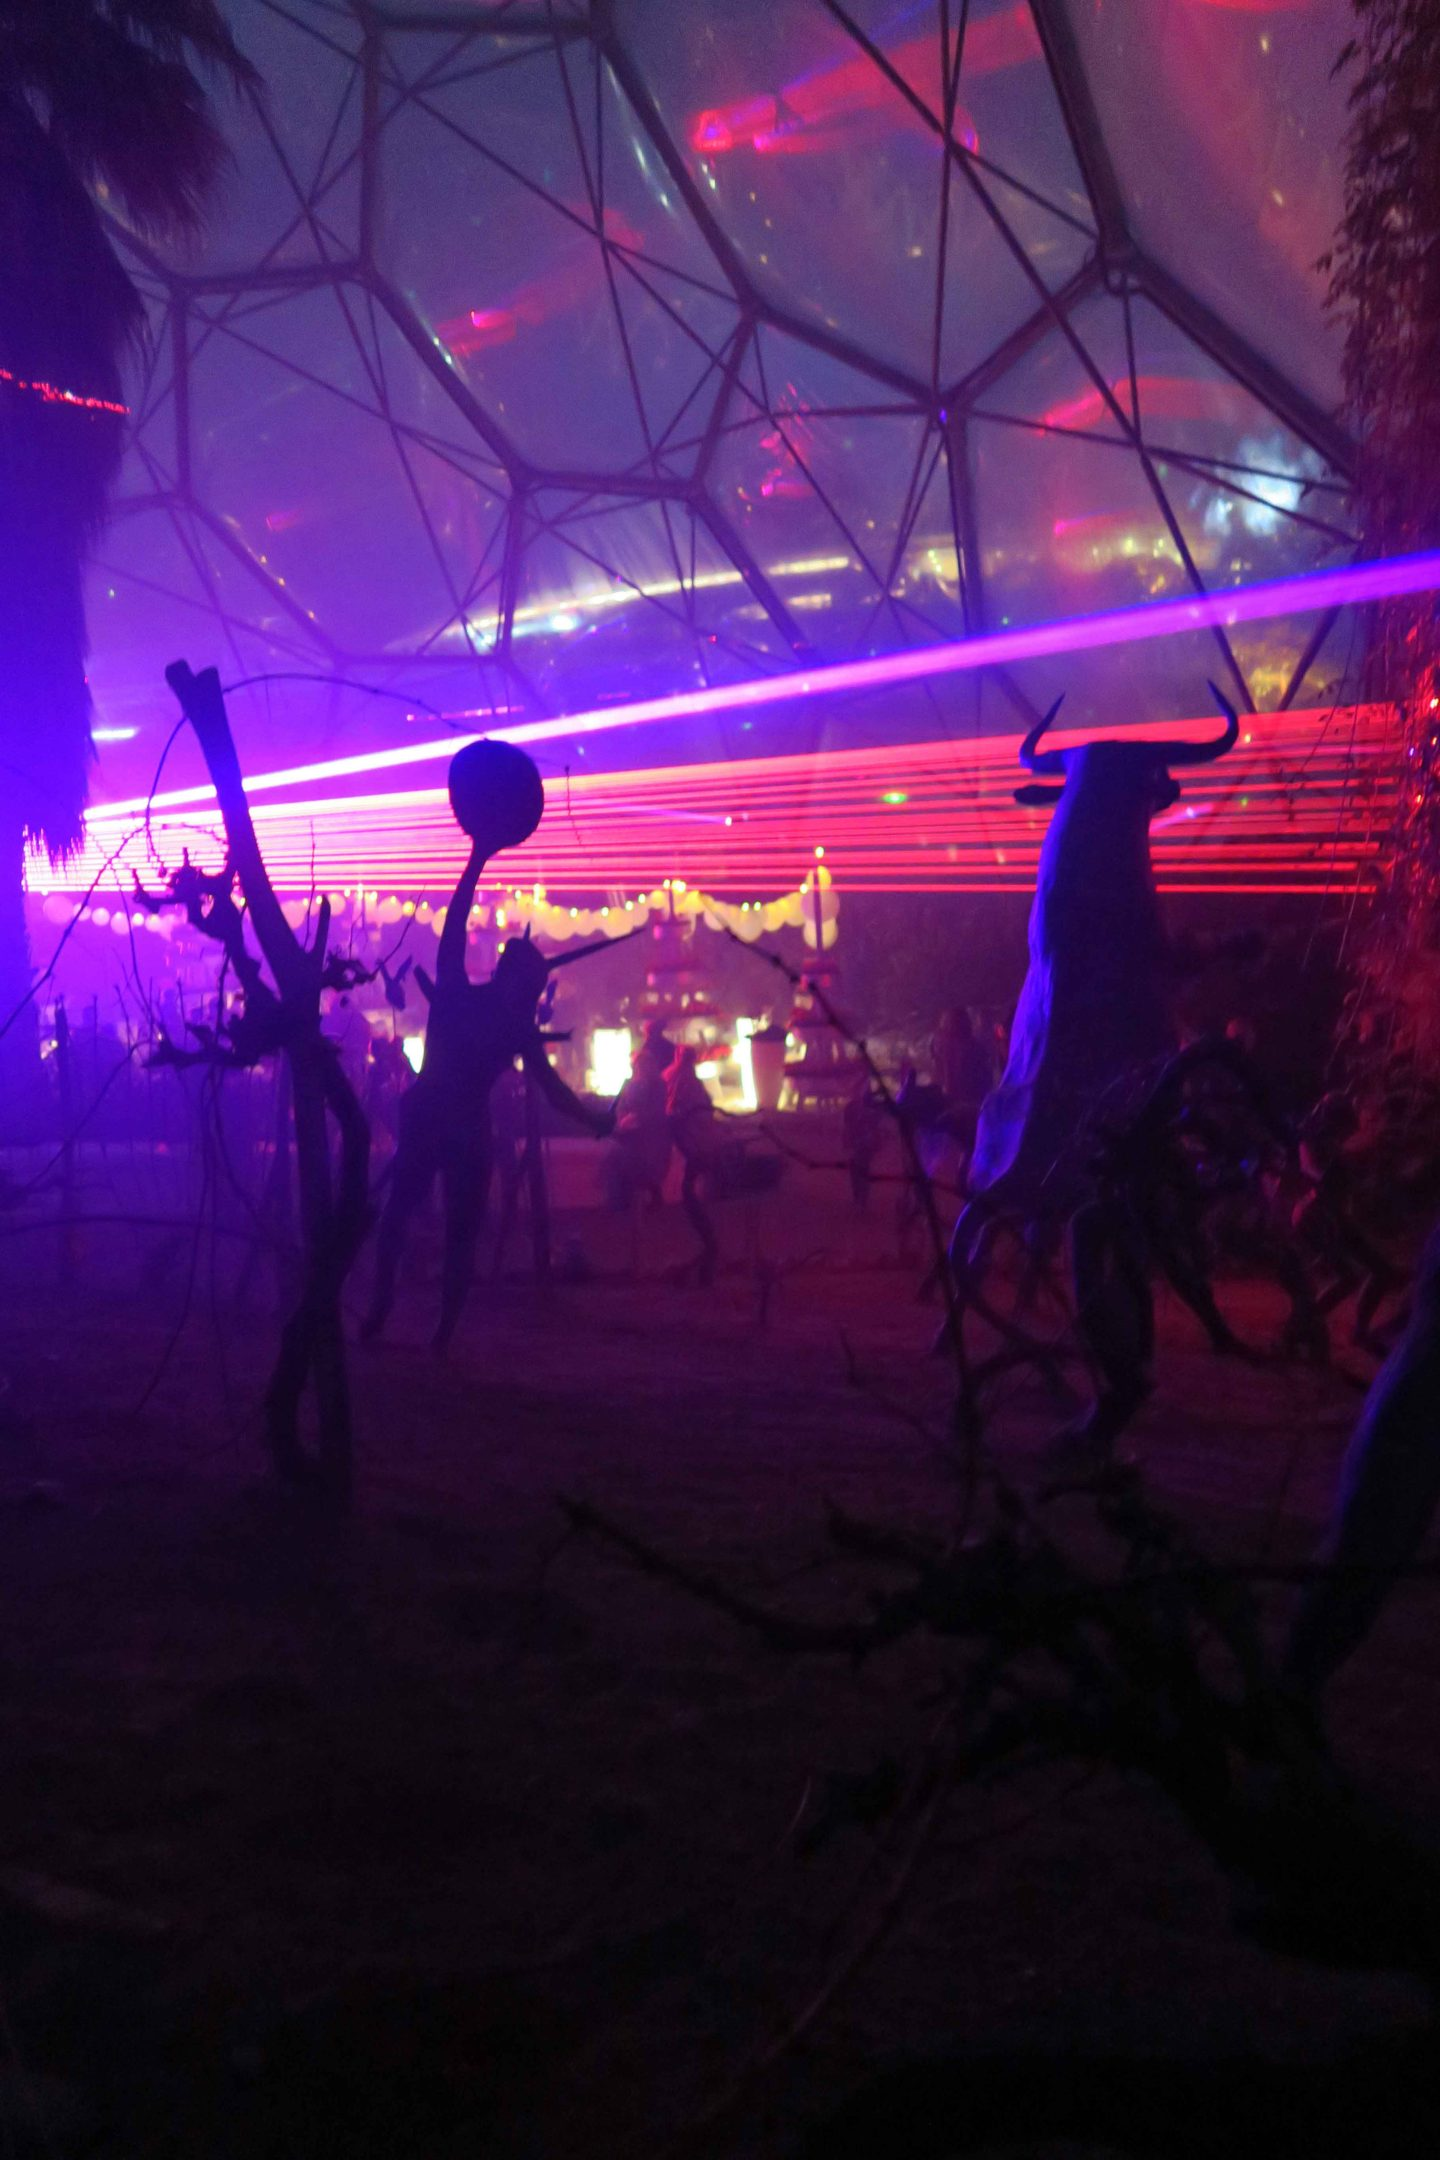 eden festival of light and sound lasers in biome statues